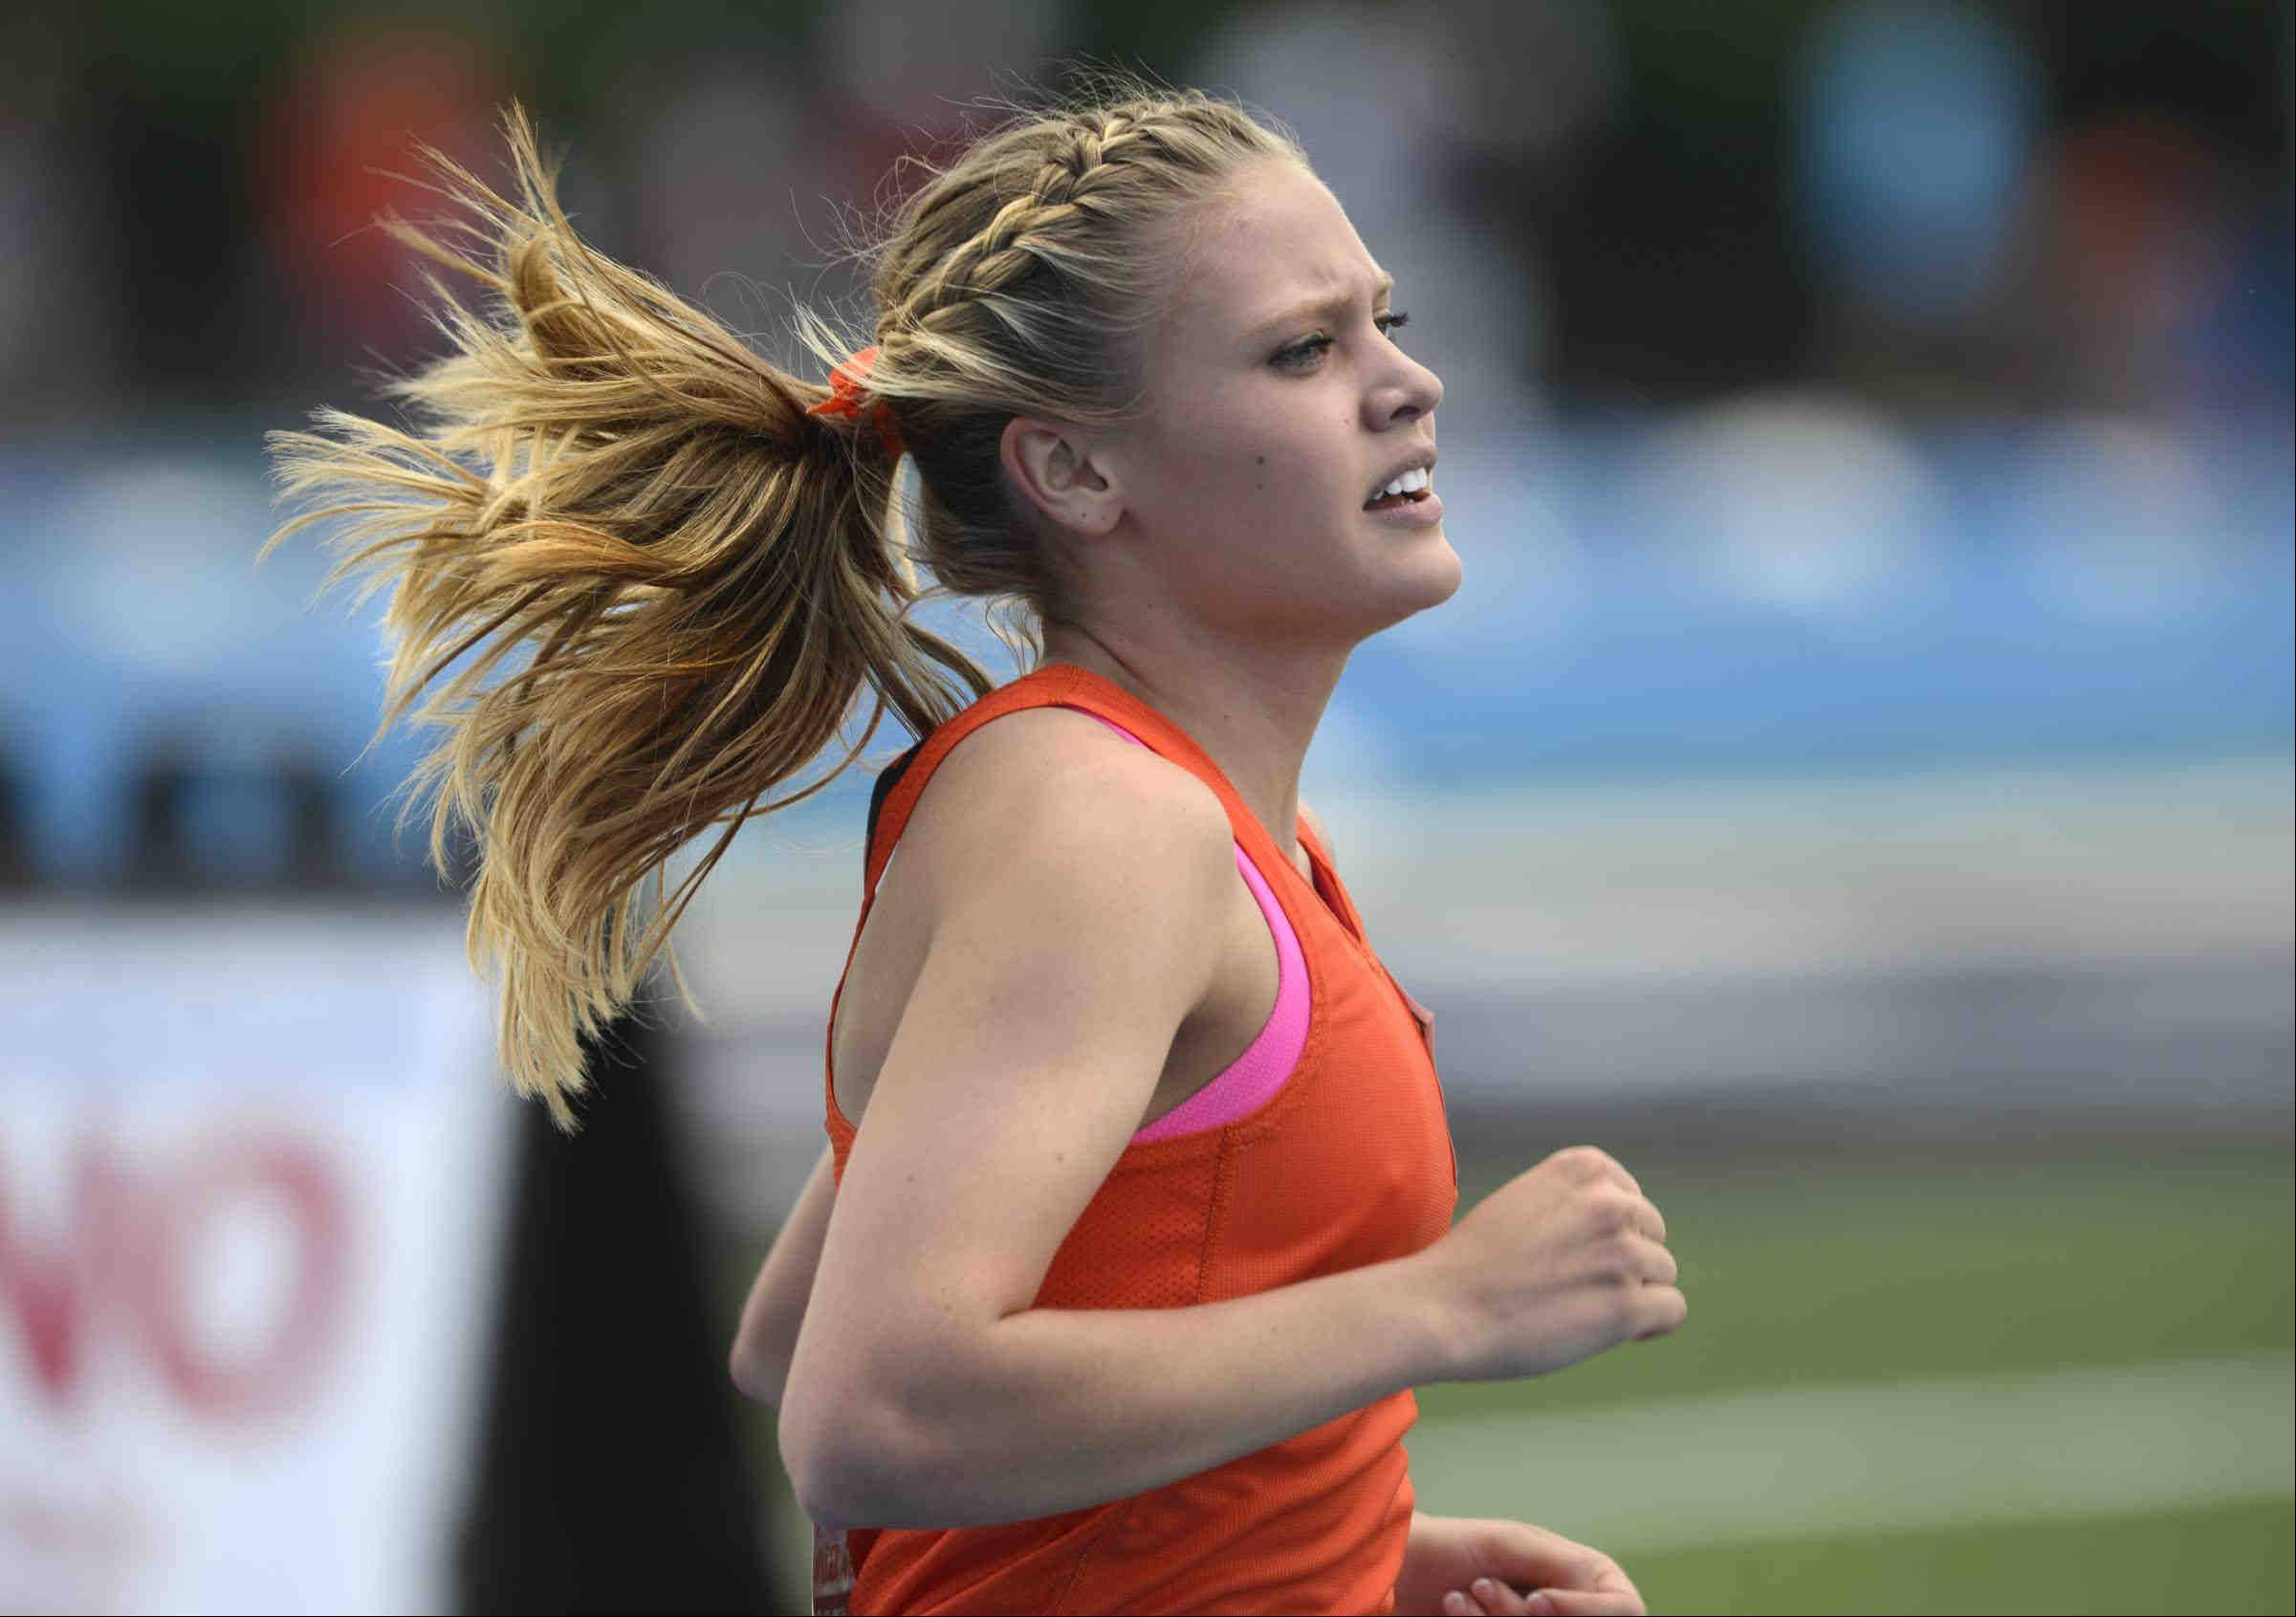 John Starks/jstarks@dailyherald.com Wheaton Warrenville South's Hope Schmelzle leads her heat of the 1,600 meter run Friday at the Class 3A girls state track and field preliminaries at O'Brien Stadium at Eastern Illinois University in Charleston.